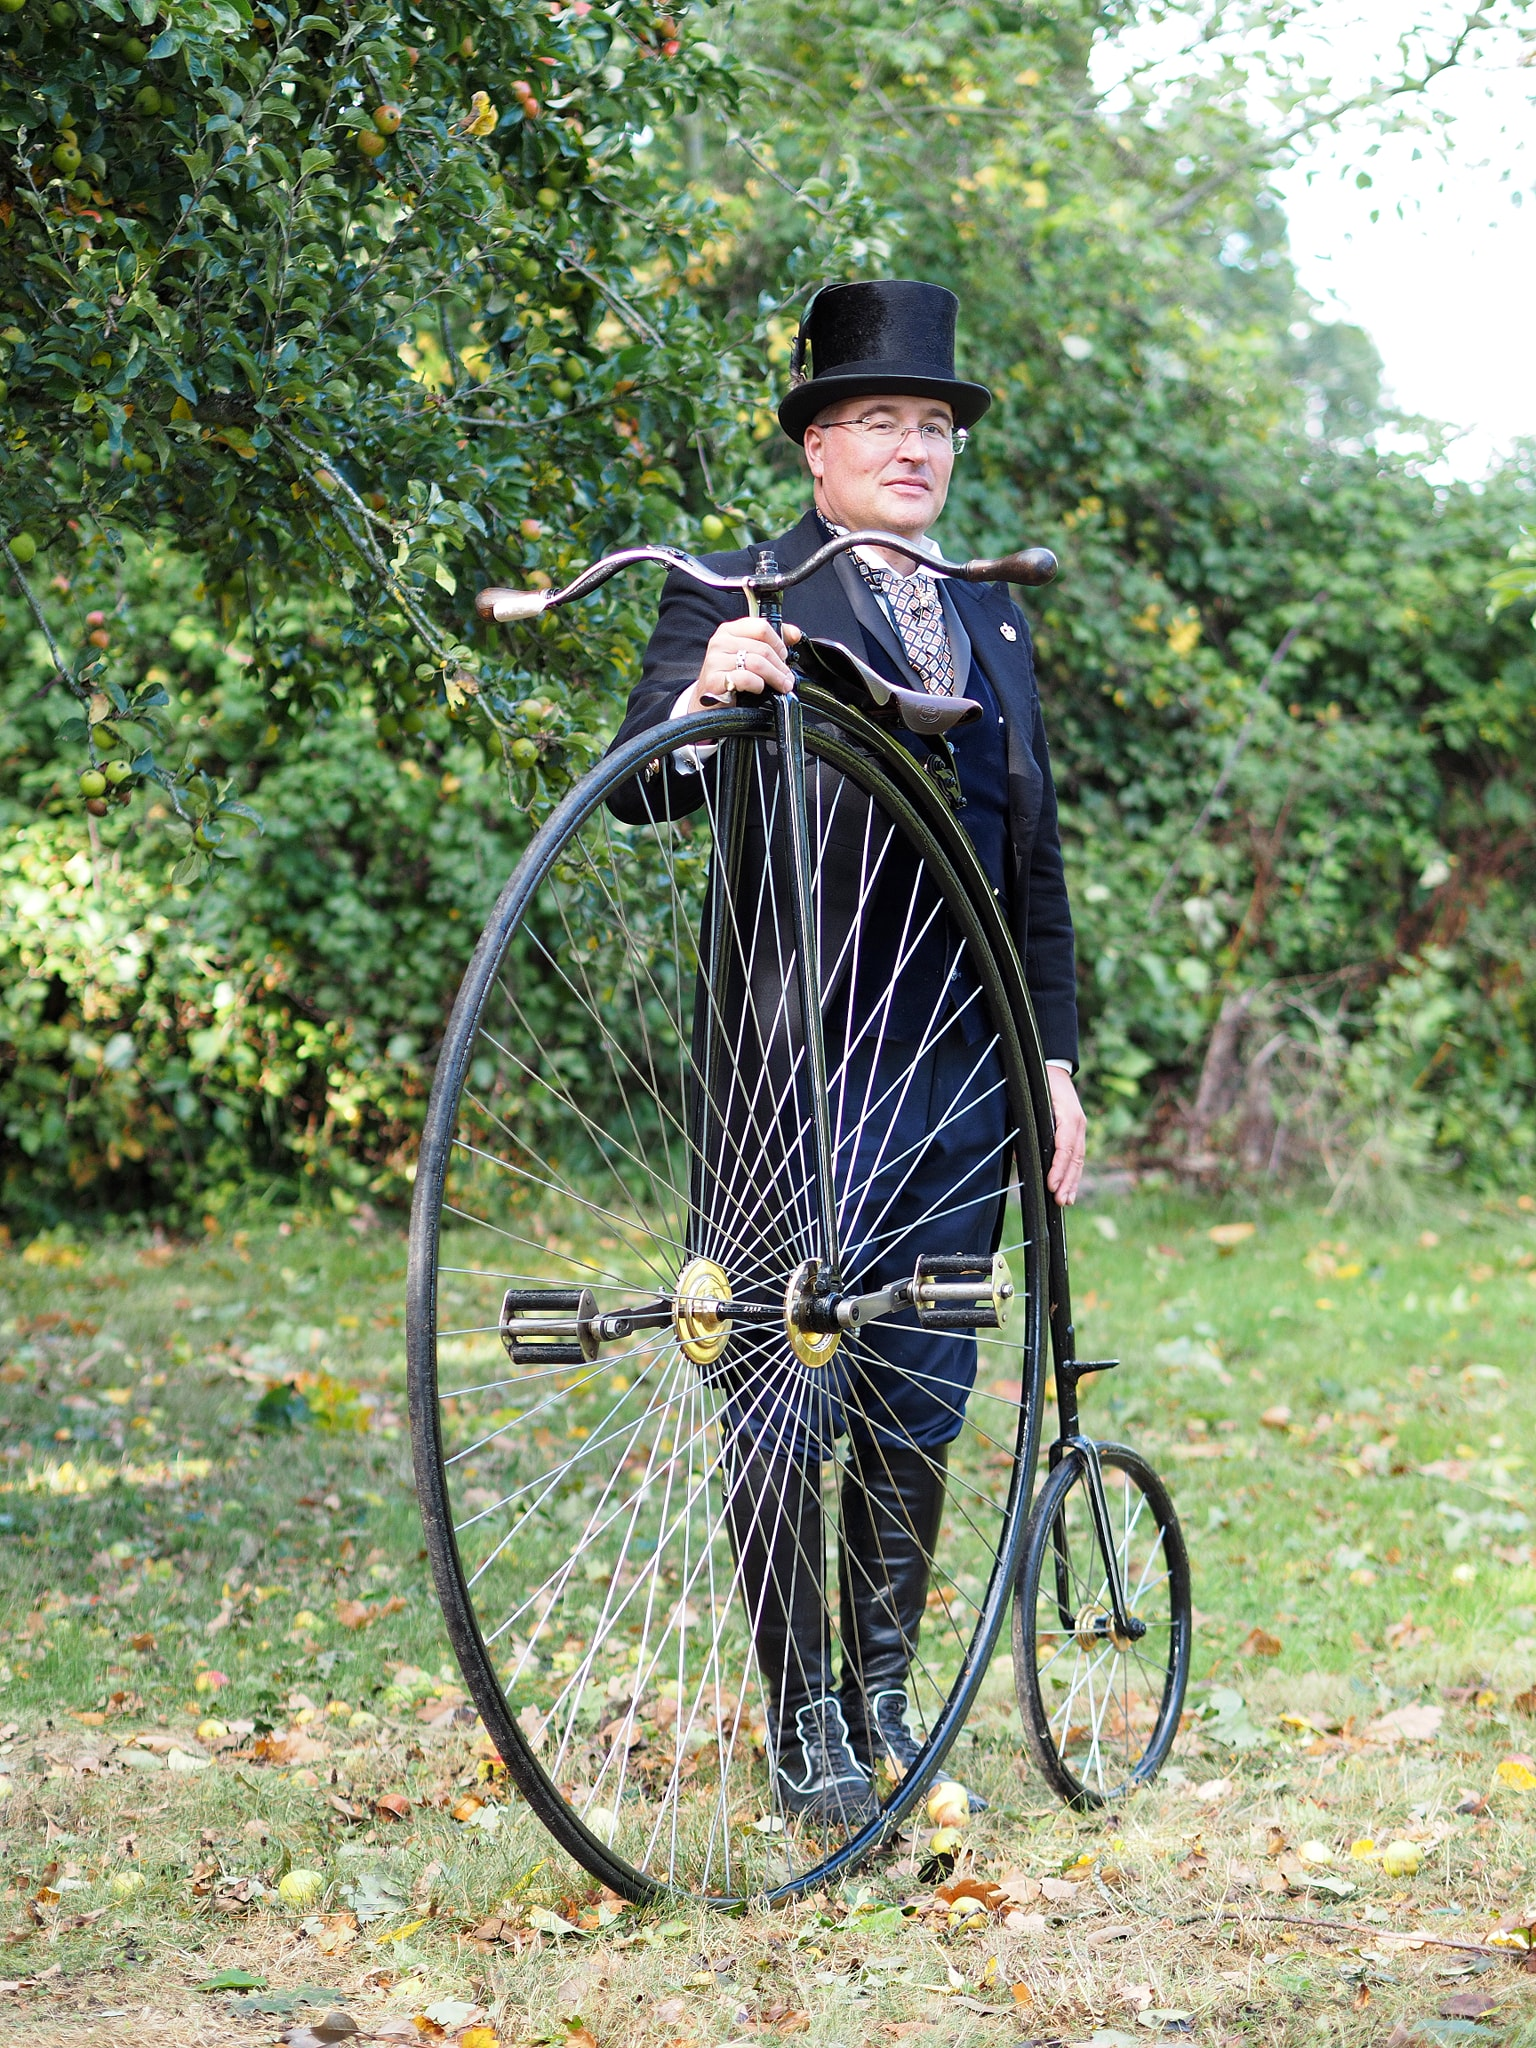 HIGH IMPACT! - With a Massive 52.6inch Front Wheel, our Full Sized Penny Farthing is an incredible sight at any location. Your visitors will be encouraged to learn, see live demonstrations and even sit upon the Iconic machine of the Victorian era.High recommendation has come from making memorable moments for everyone who has experienced Mr Phoebus